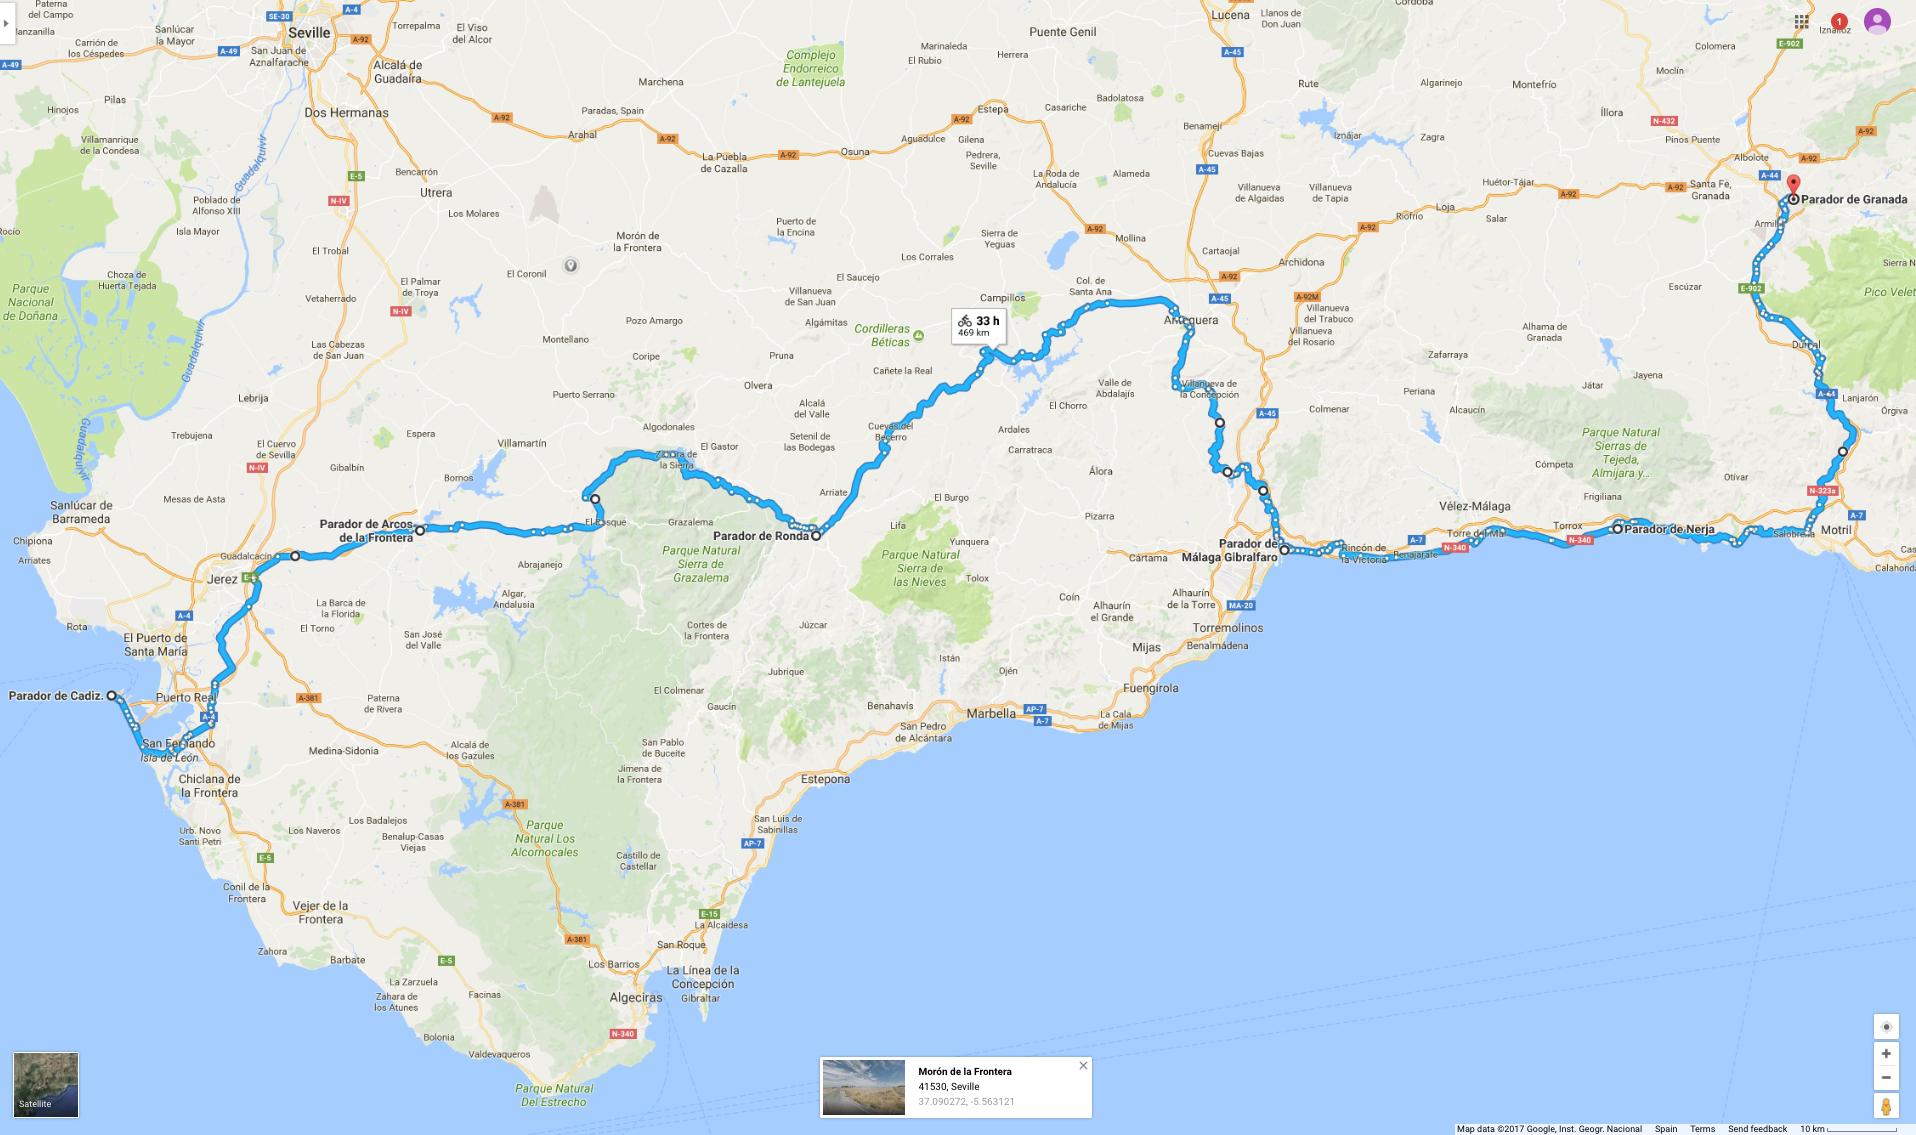 Love Spain 2018 Cycle Route.png